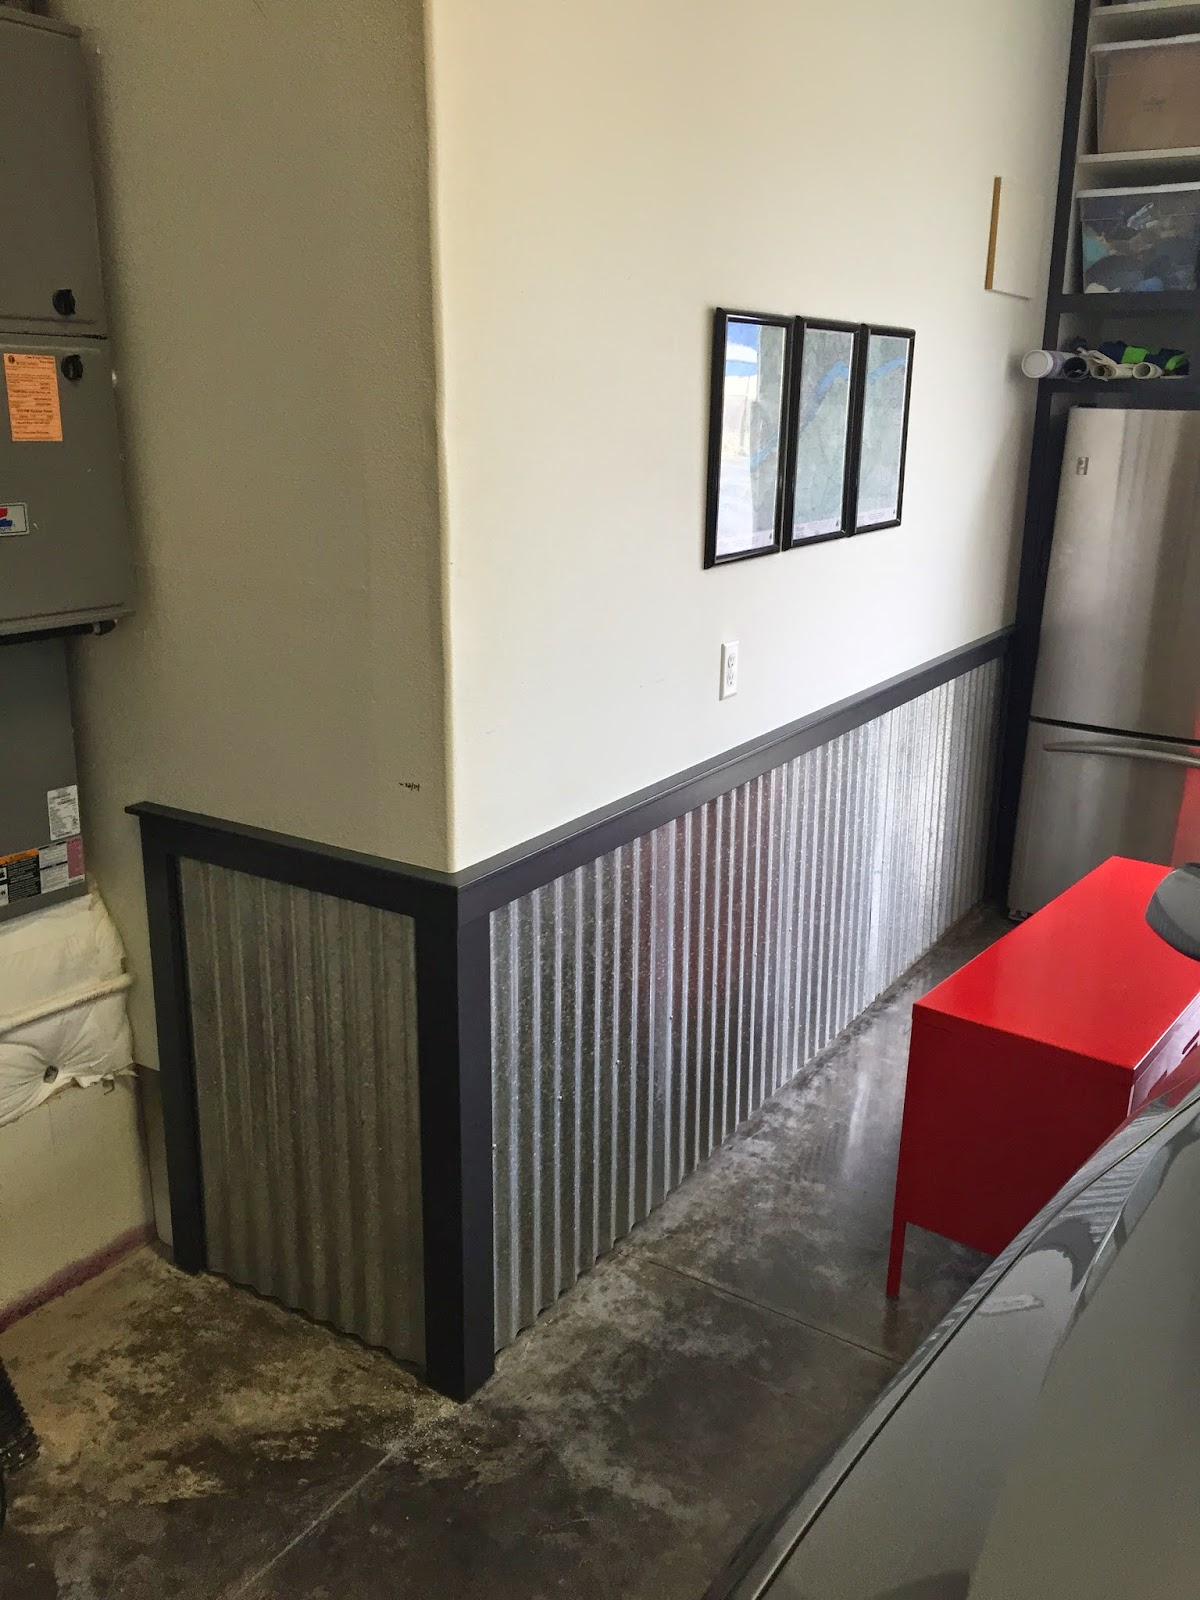 Corrugated Steel Chair Rail Swing Stand Online Garage Cabinets And Nobles Project Blog I Put A Step Up In The Where Garbage Recycling Cans Go